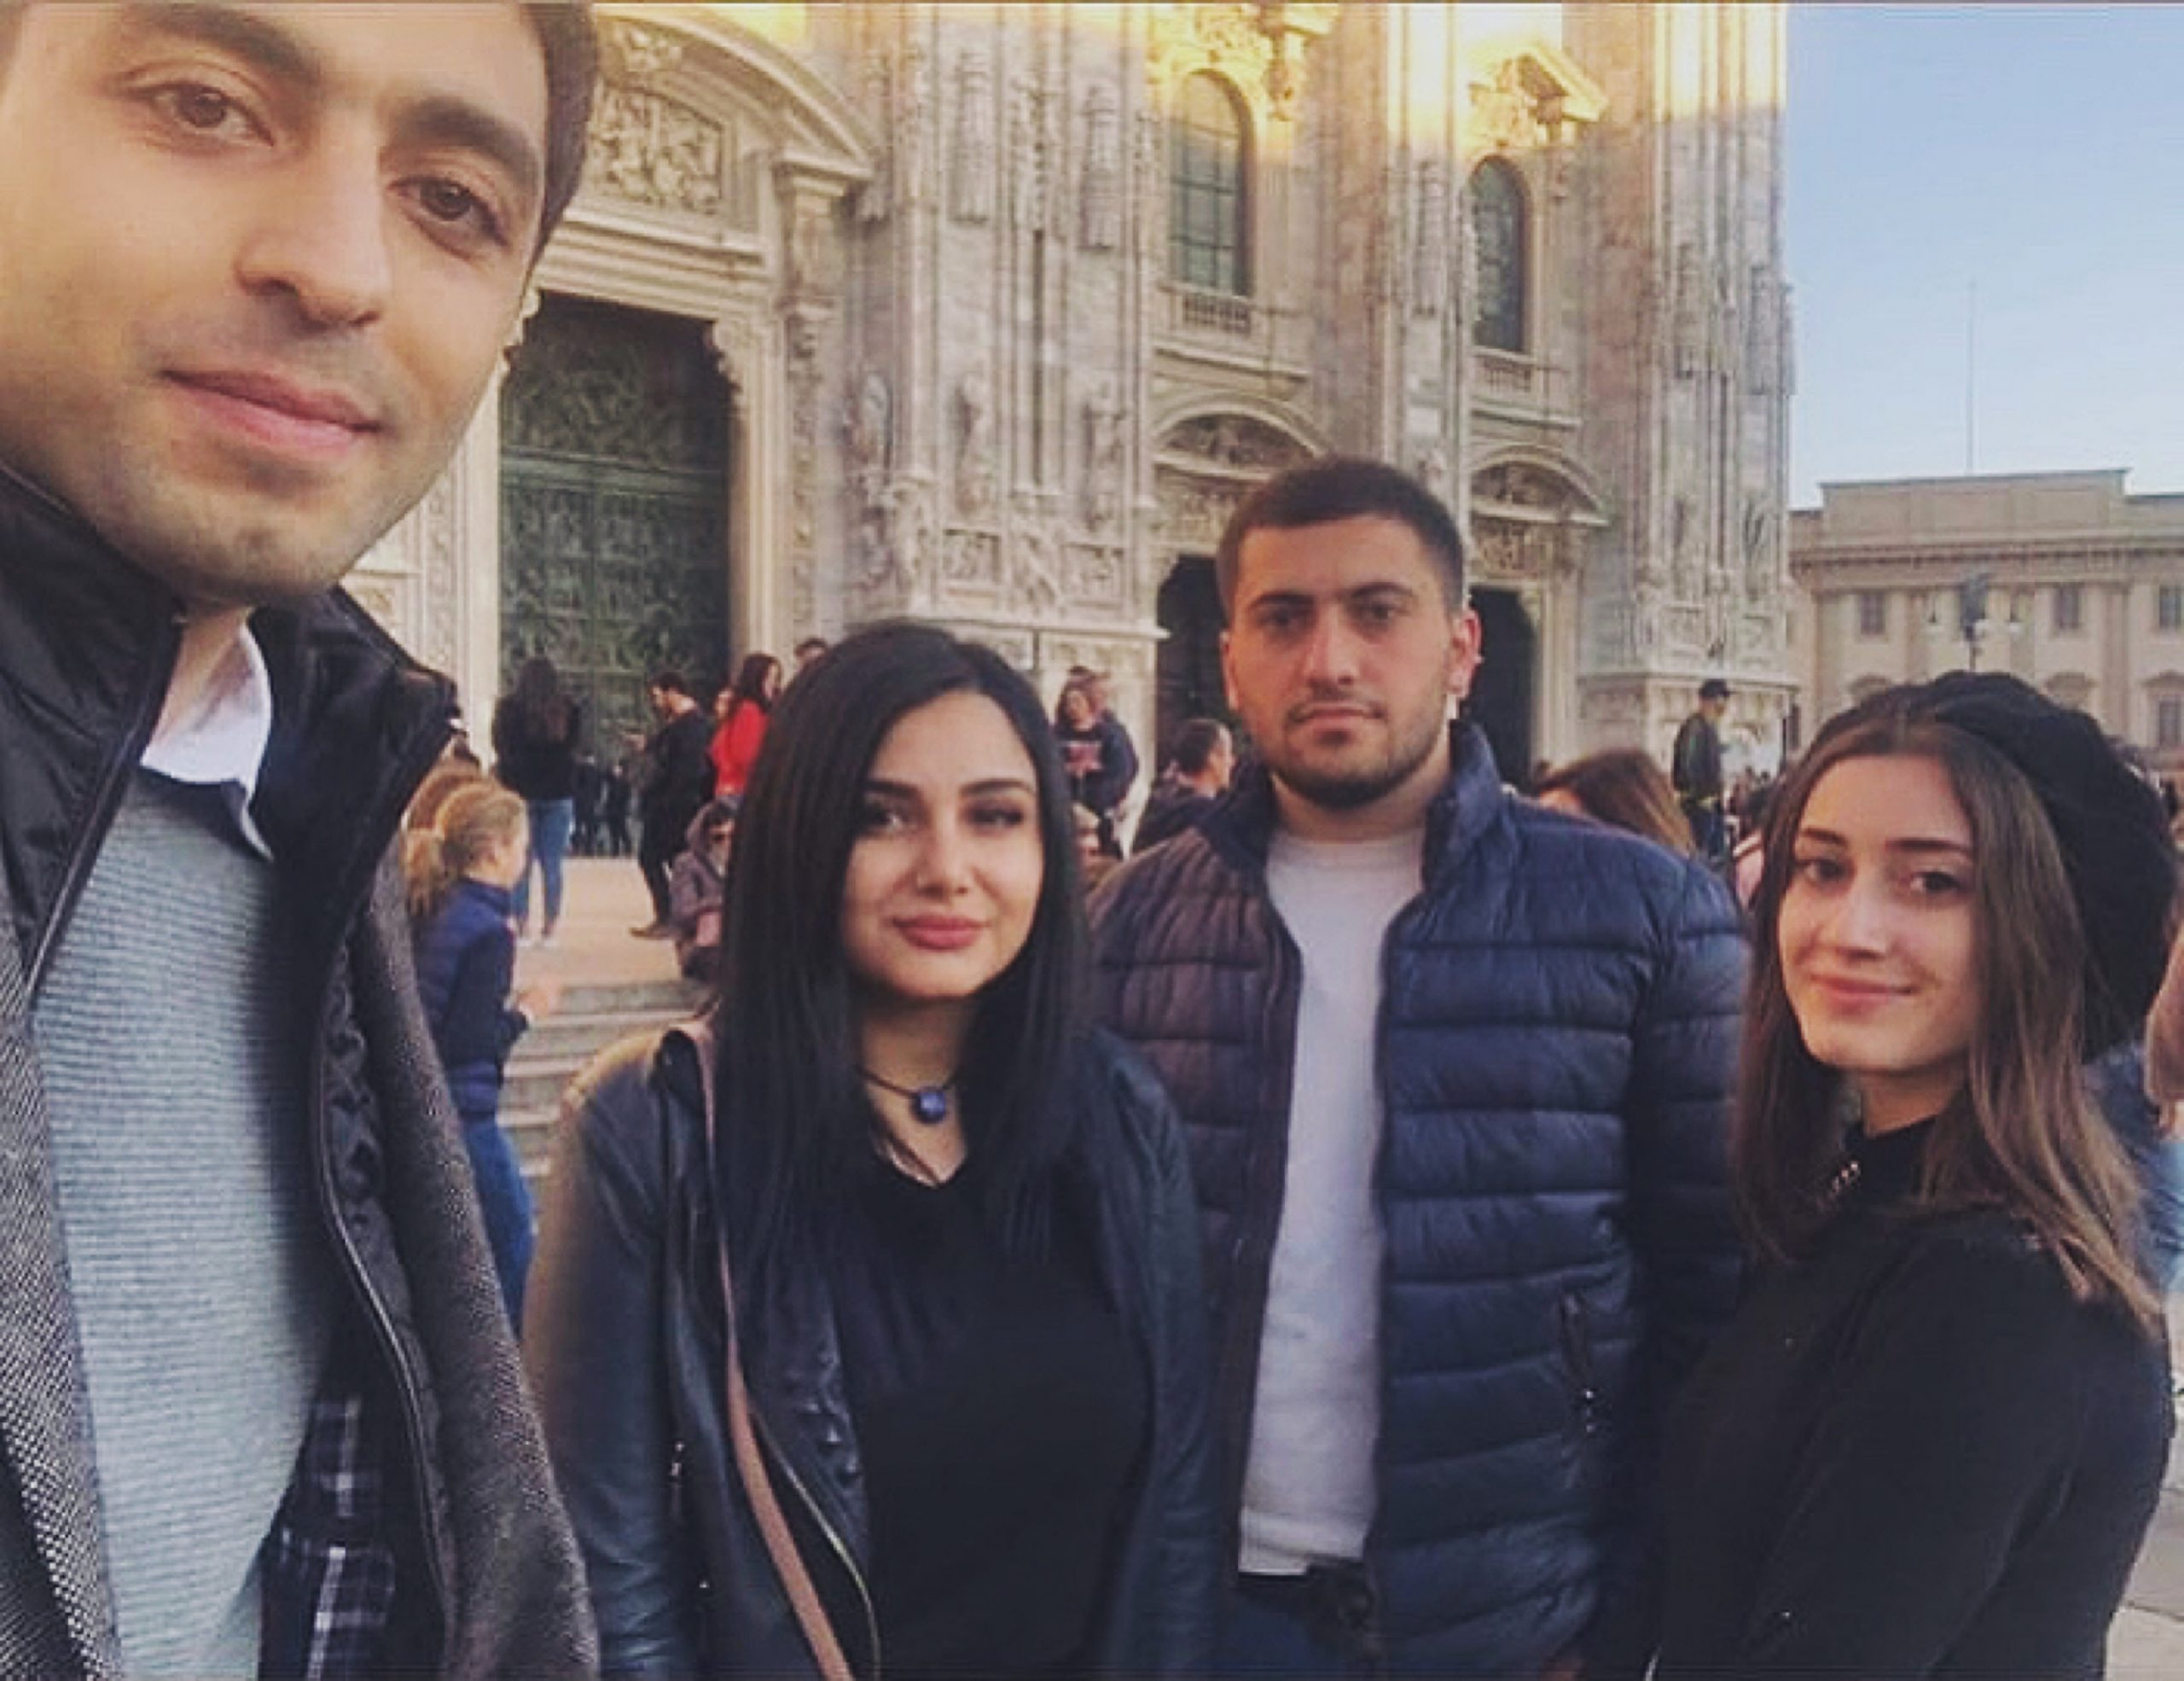 Exploring democracy results into an unforgettable trip in Italy